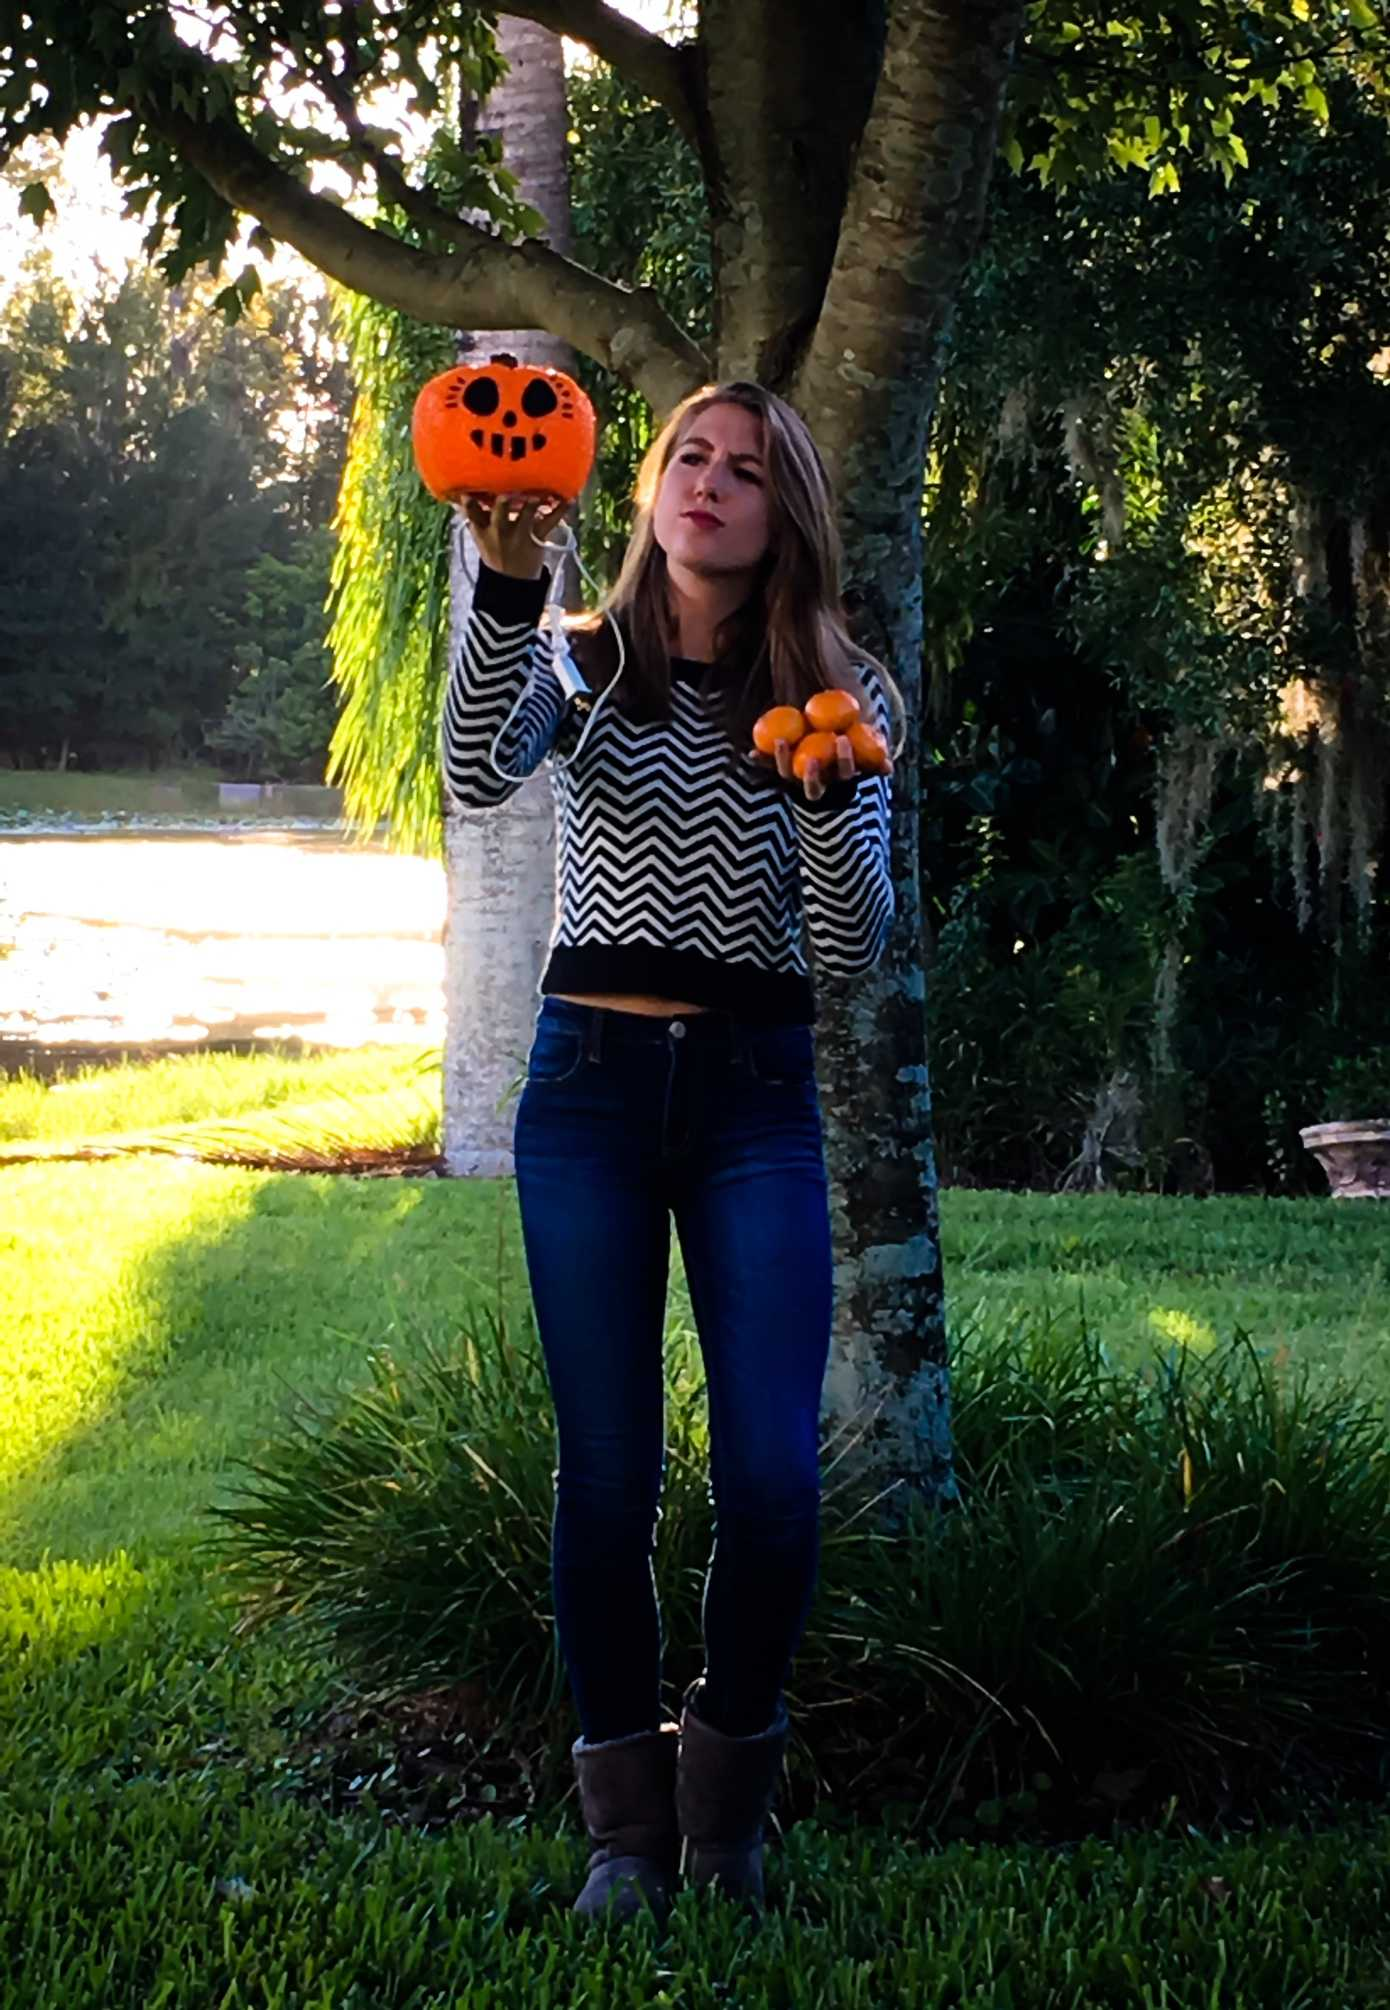 NOT-SO SWEATER WEATHER: I have my sweater and boots on, I've clicked my heels three times, I don't understand what else it's going to take to turn my fake Jack-O-Lantern into a real autumn treat. These oranges don't fill my fall- deprived heart like a pumpkin would.